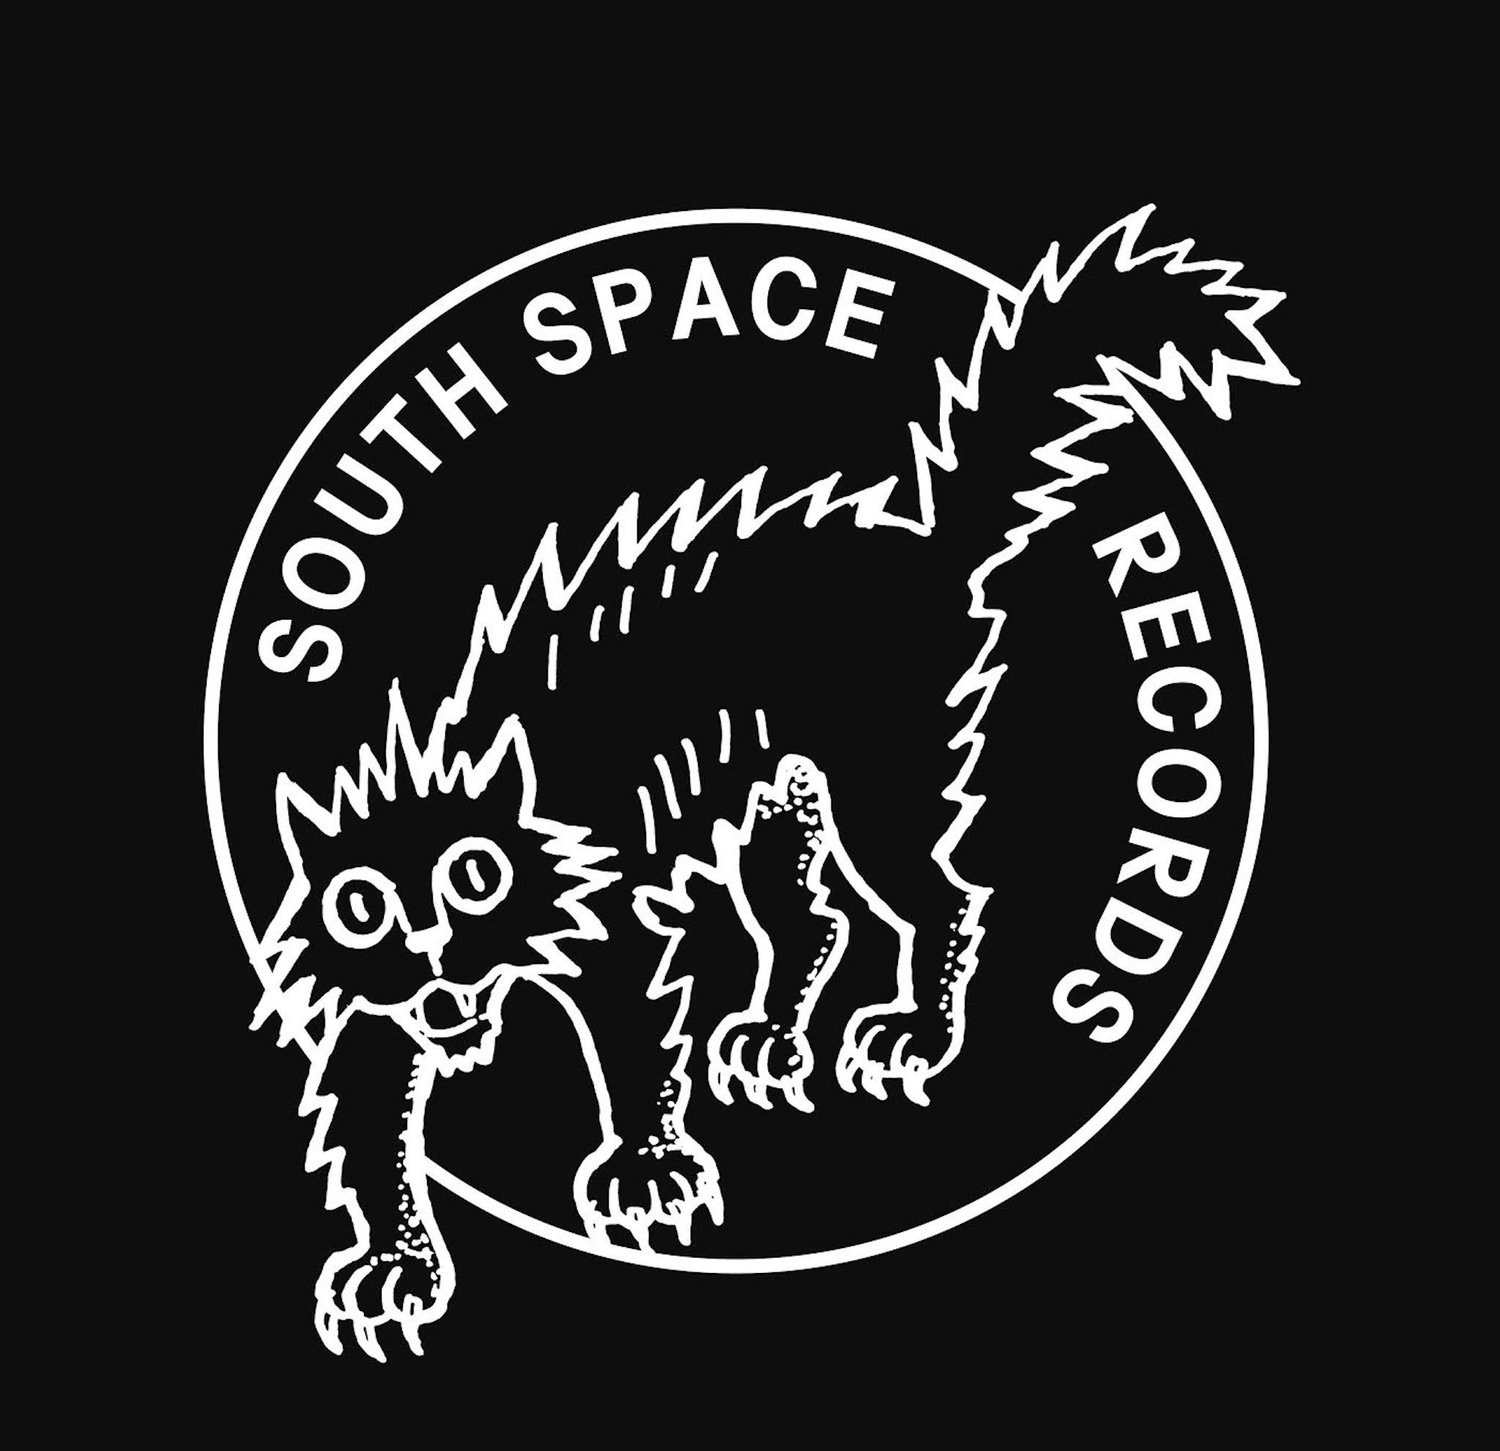 South Space Records